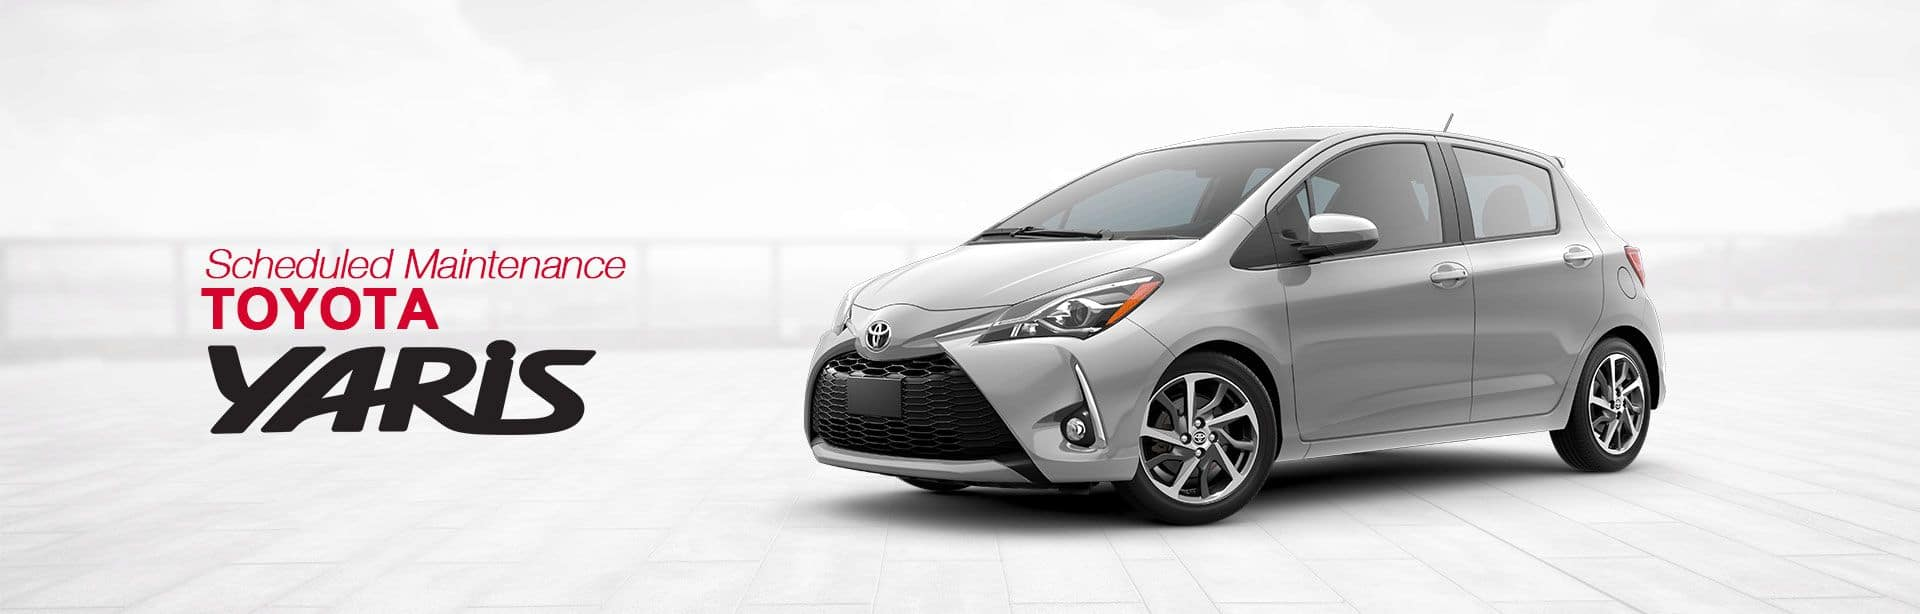 Toyota Yaris Scheduled Maintenance South Dade Toyota Of Homestead